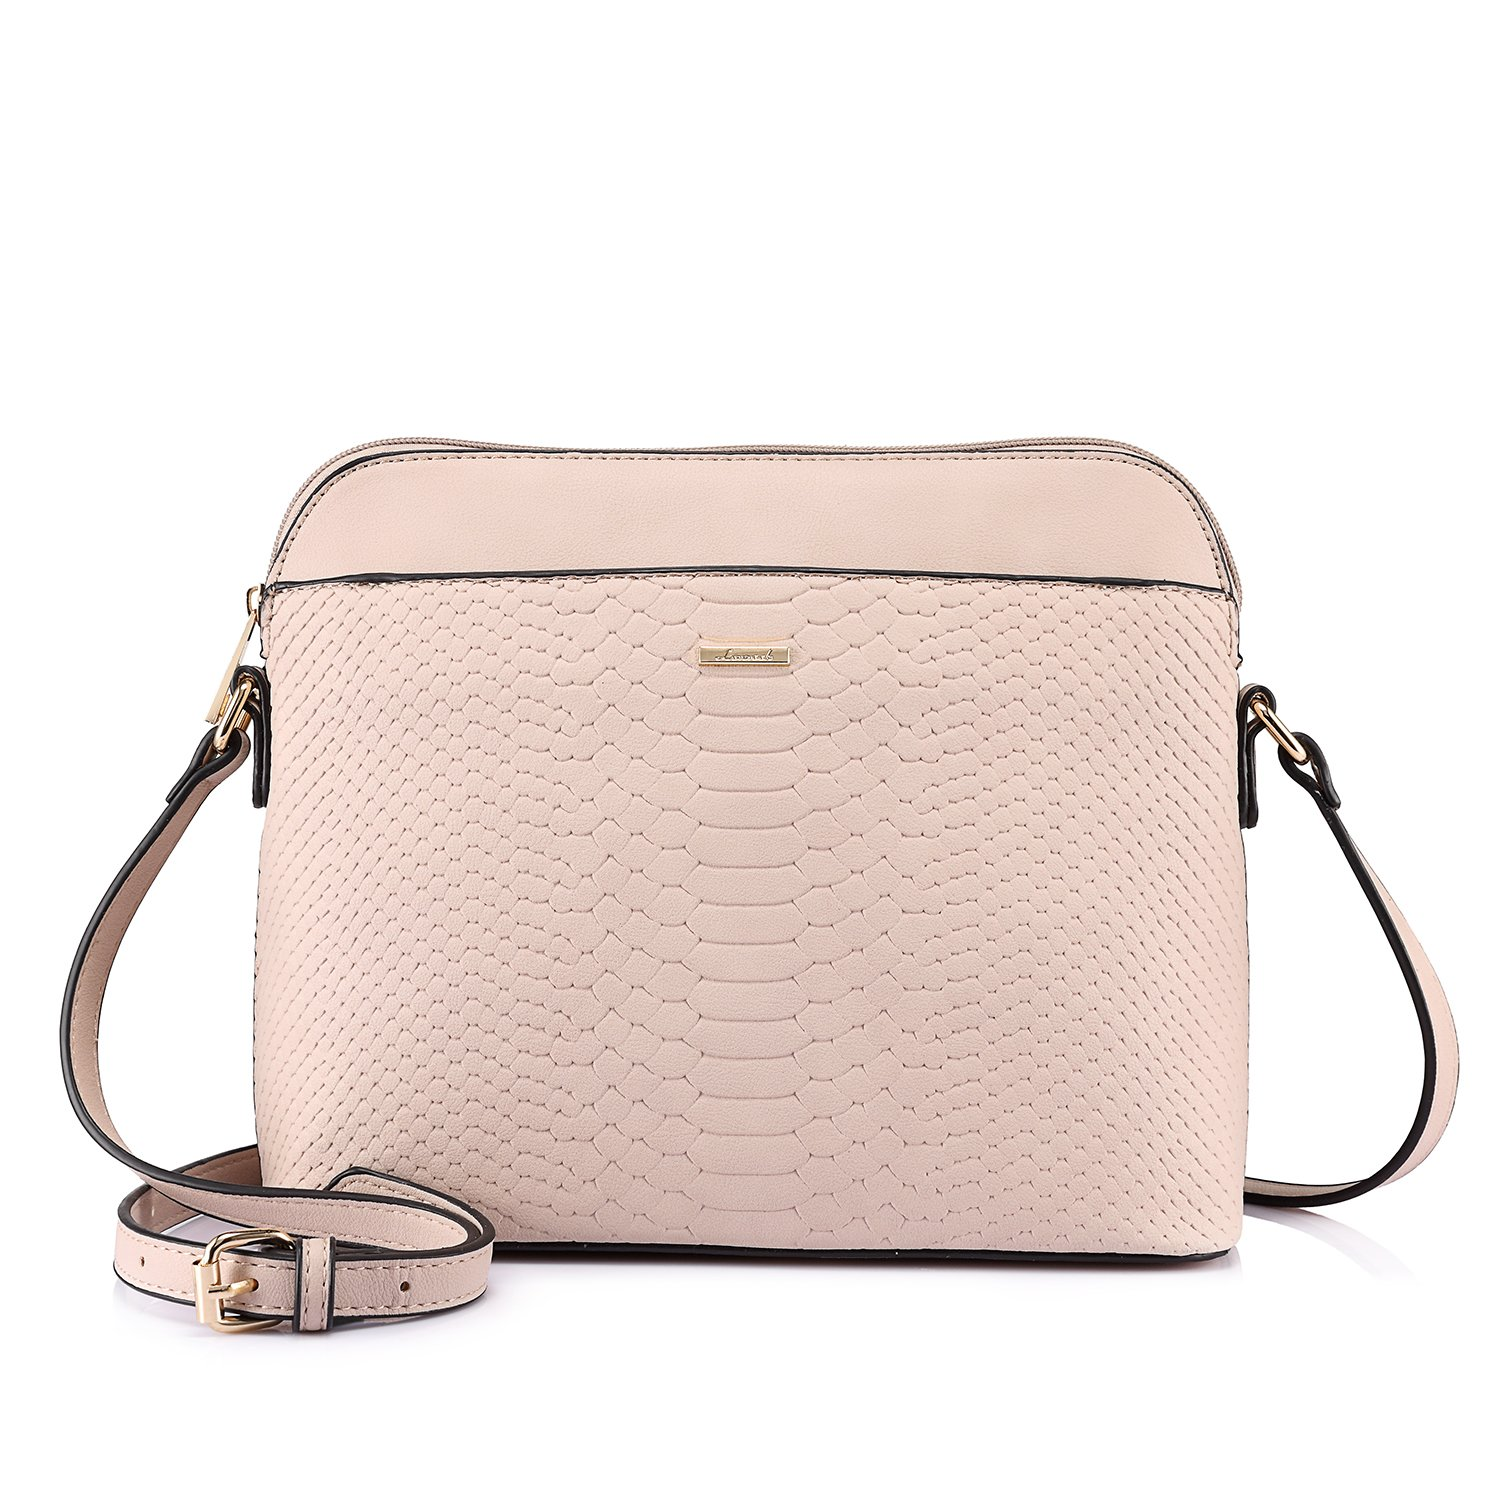 Review of Stylish Crossbody Bags Purses Shoulder Bag for Women in Contrast Design